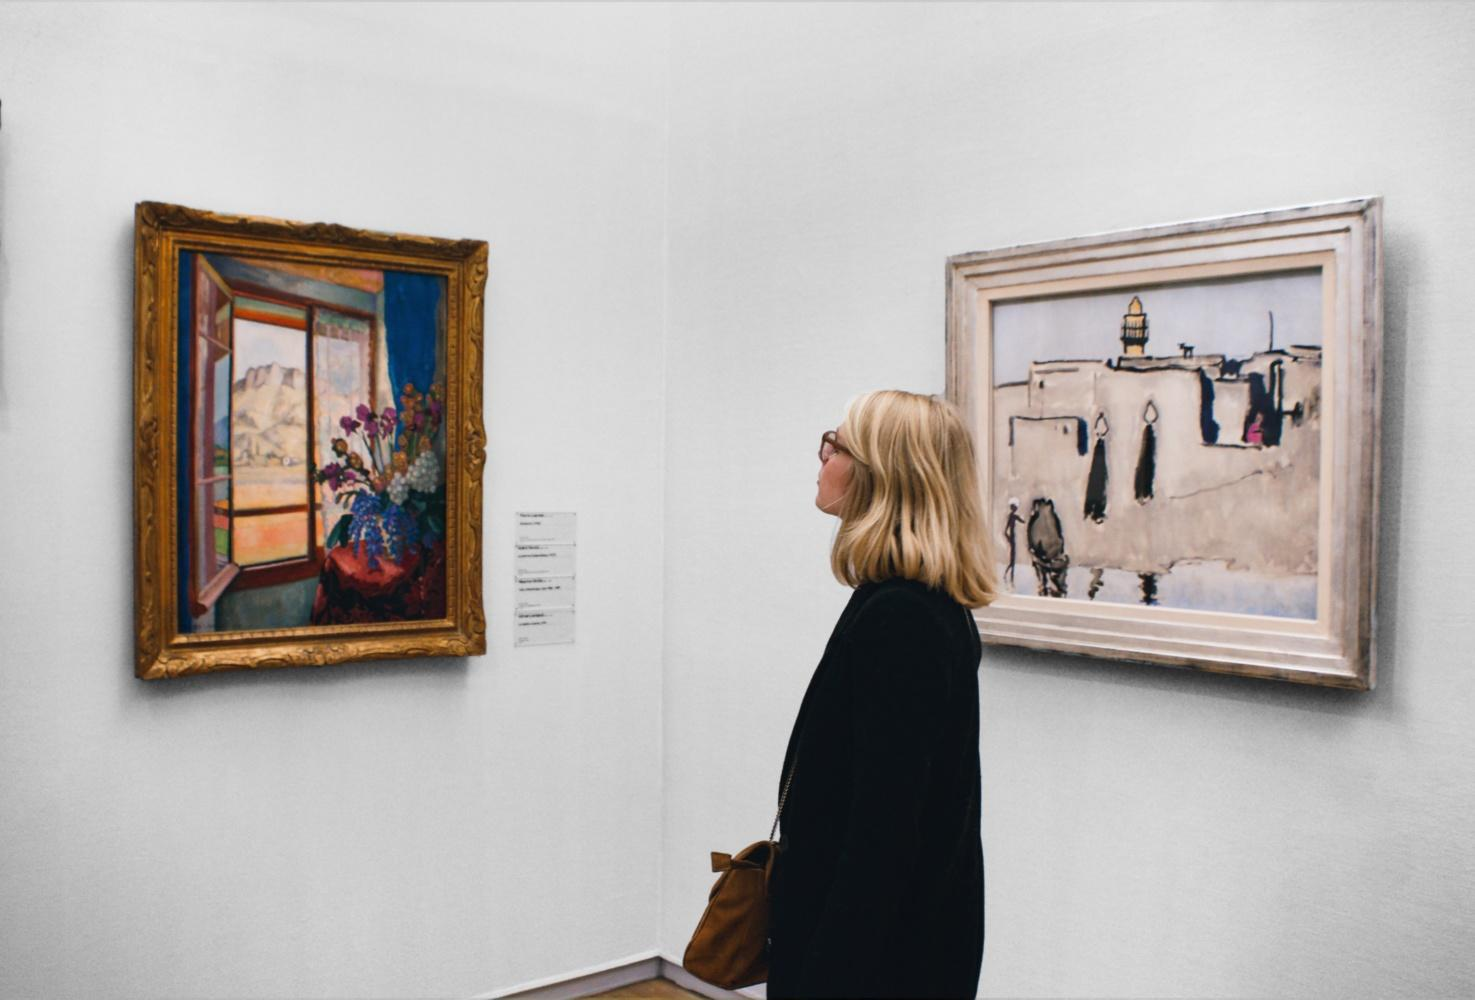 Blonde woman looking at an art exhibition. Staycation Inspiration for Leek, Staffordshire